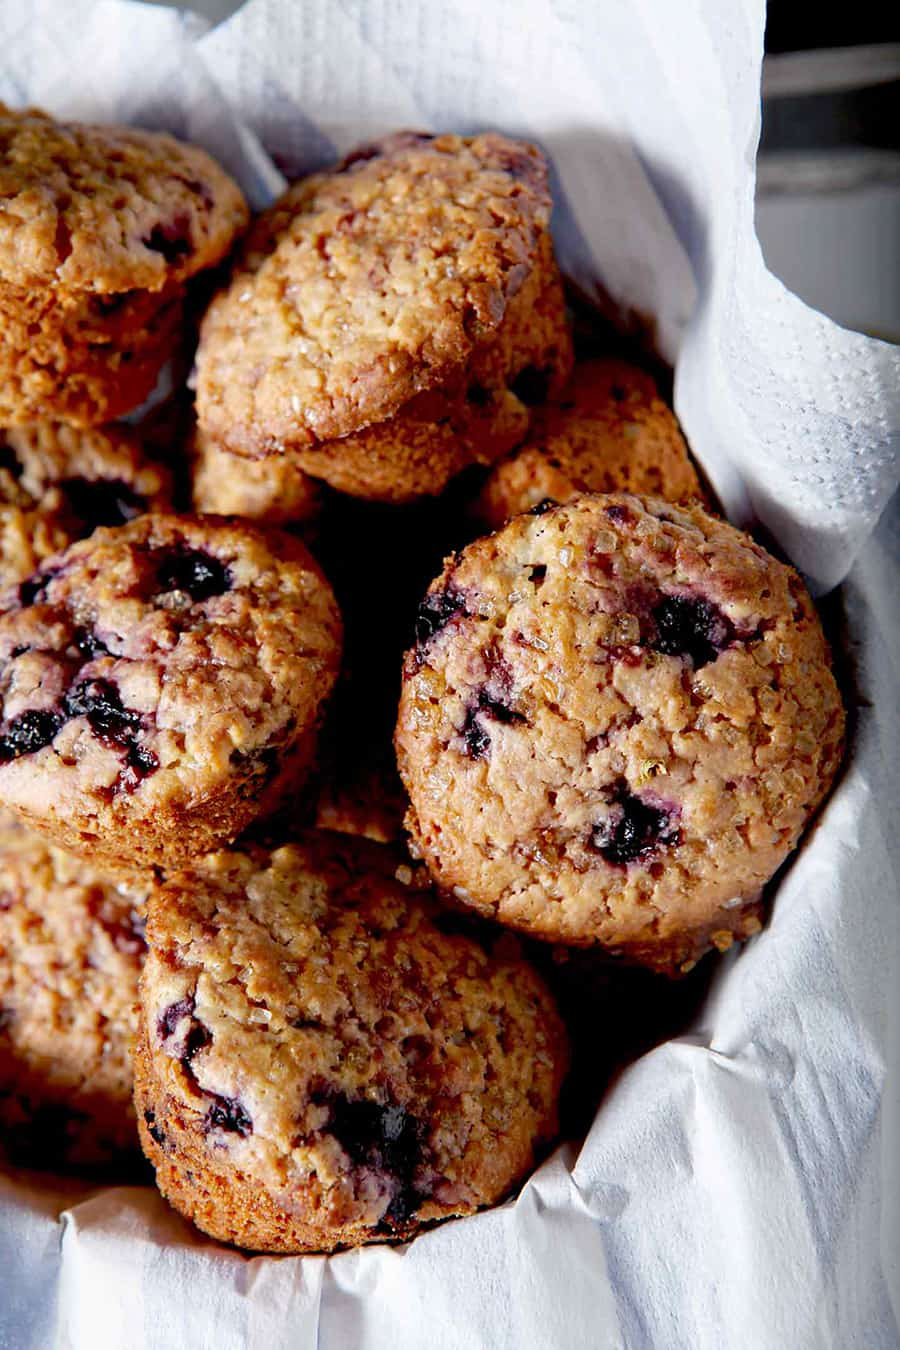 Mini Meyer Lemon Blueberry Muffins make the best winter breakfast for adults and kids alike! Low in sugar, these whole wheat muffins bake up quickly and add lemony goodness to the morning routine. Frozen wild blueberries, Meyer lemon zest and lemon juice serve as key flavor components of these muffins, which are also dairy-free. Naturally sweet, dairy free and tart, Mini Meyer Lemon Blueberry Muffins will become your family's favorite breakfast! blueberry muffins | kids blueberry muffins | kid muffins | lemon muffins | lemon blueberry | toddler muffins | toddler breakfast ideas | playdate ideas | playdate recipes